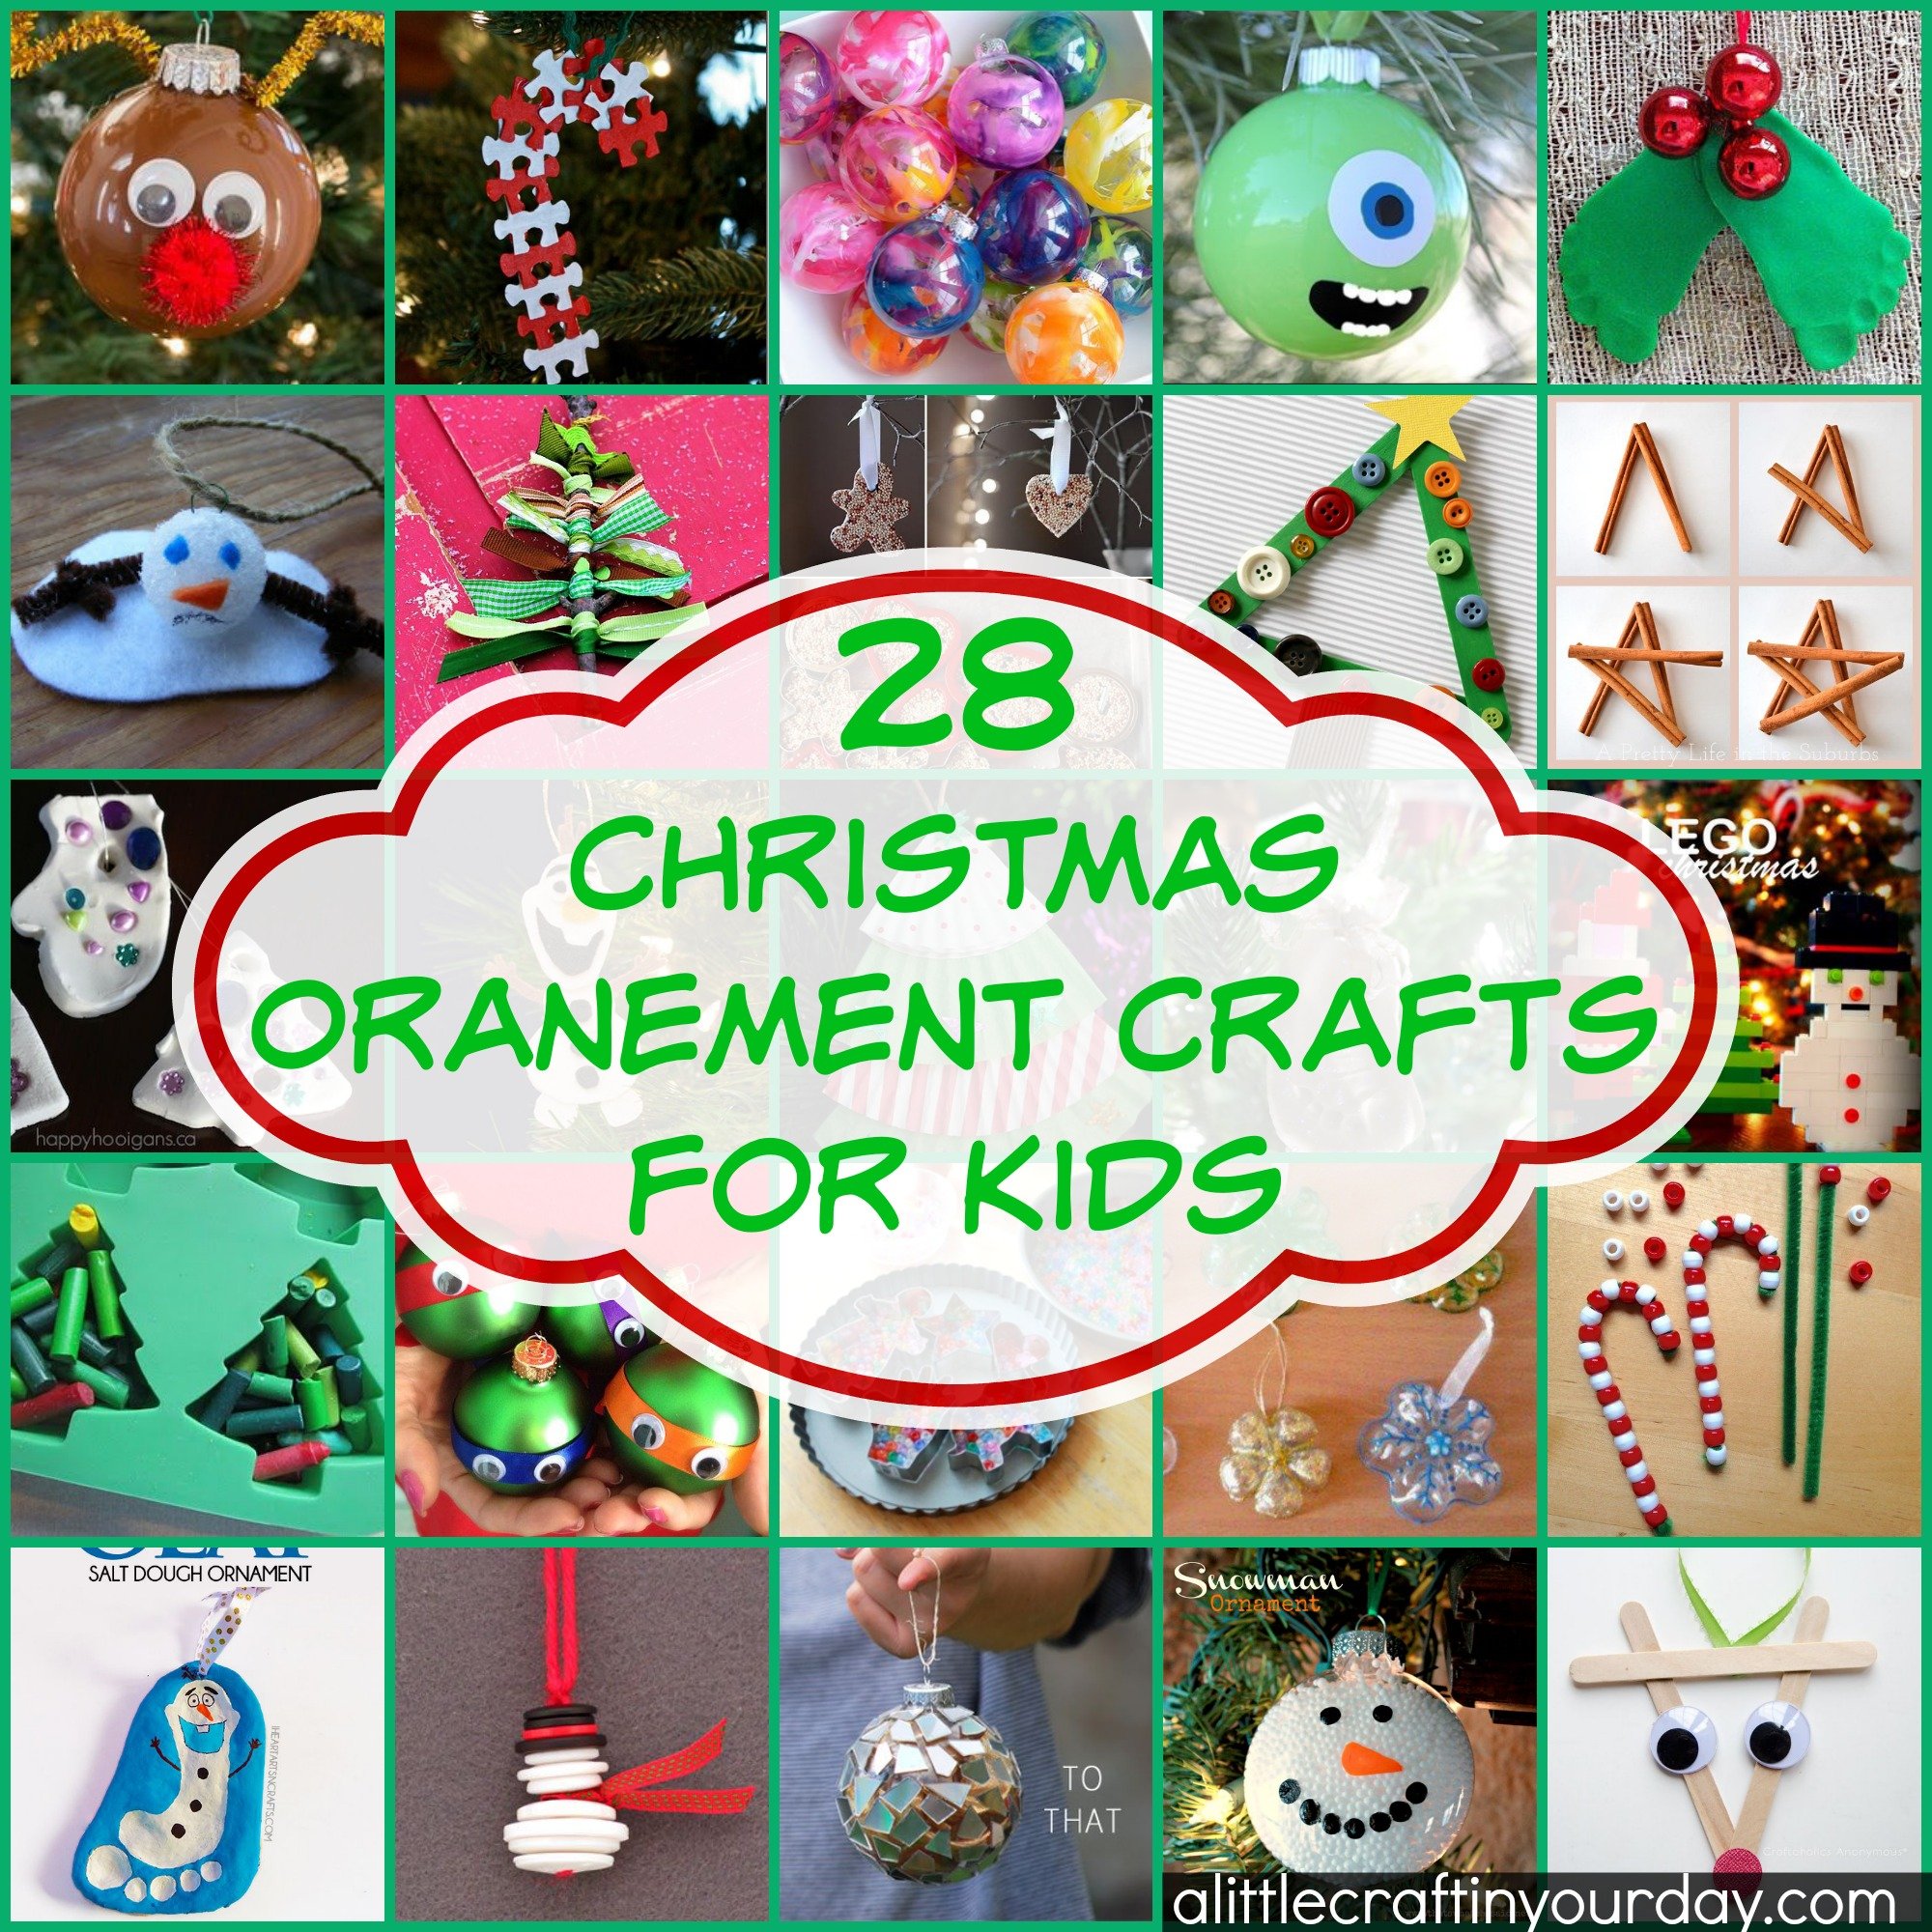 1130 28 christmas ornament crafts for kids 28_christmas_oranment_crafts_for_kids - Christmas Decoration Craft Ideas